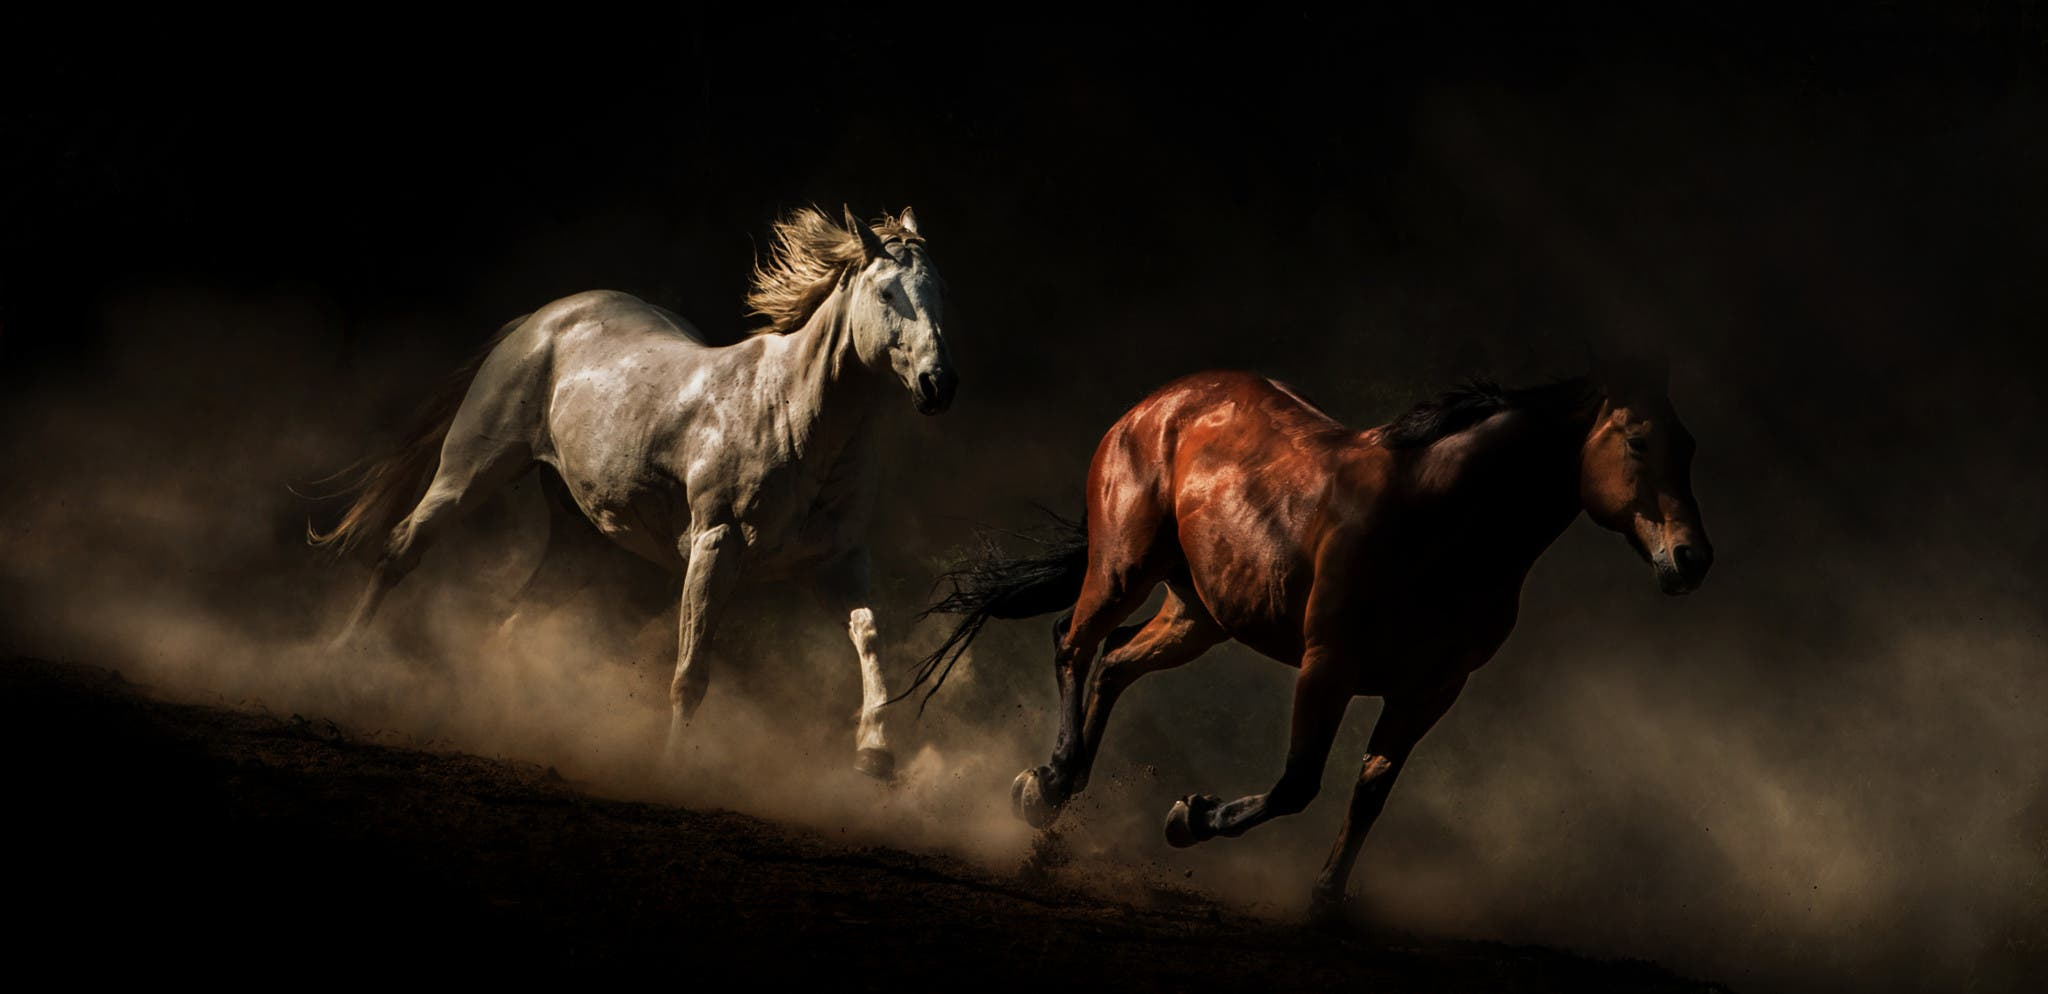 Ryan Courson Magical Portrait Photographs Of Horses